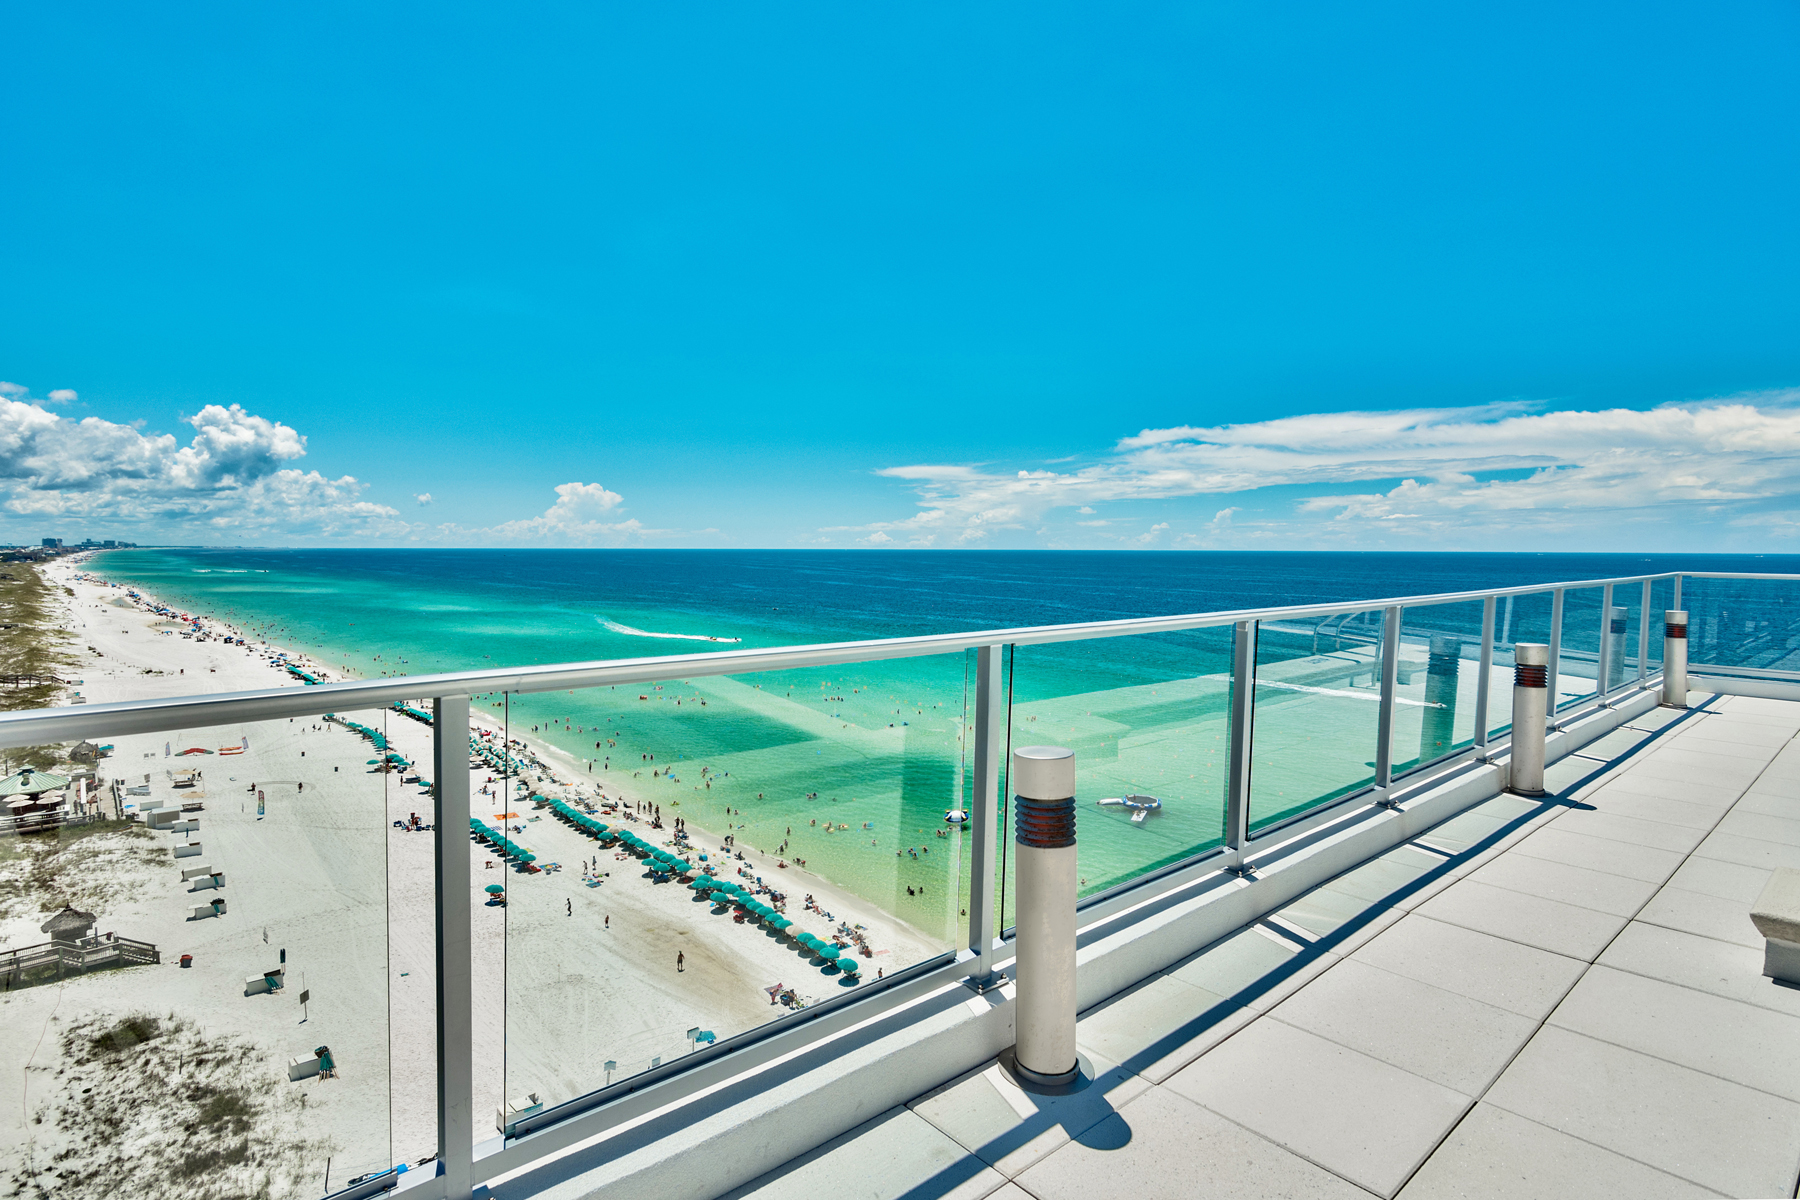 Condominio por un Venta en LUXURIOUS PRE-CONSTRUCTION OPPORTUNITY 1900 Scenic Hwy 98 902 Destin, Florida 32541 Estados Unidos